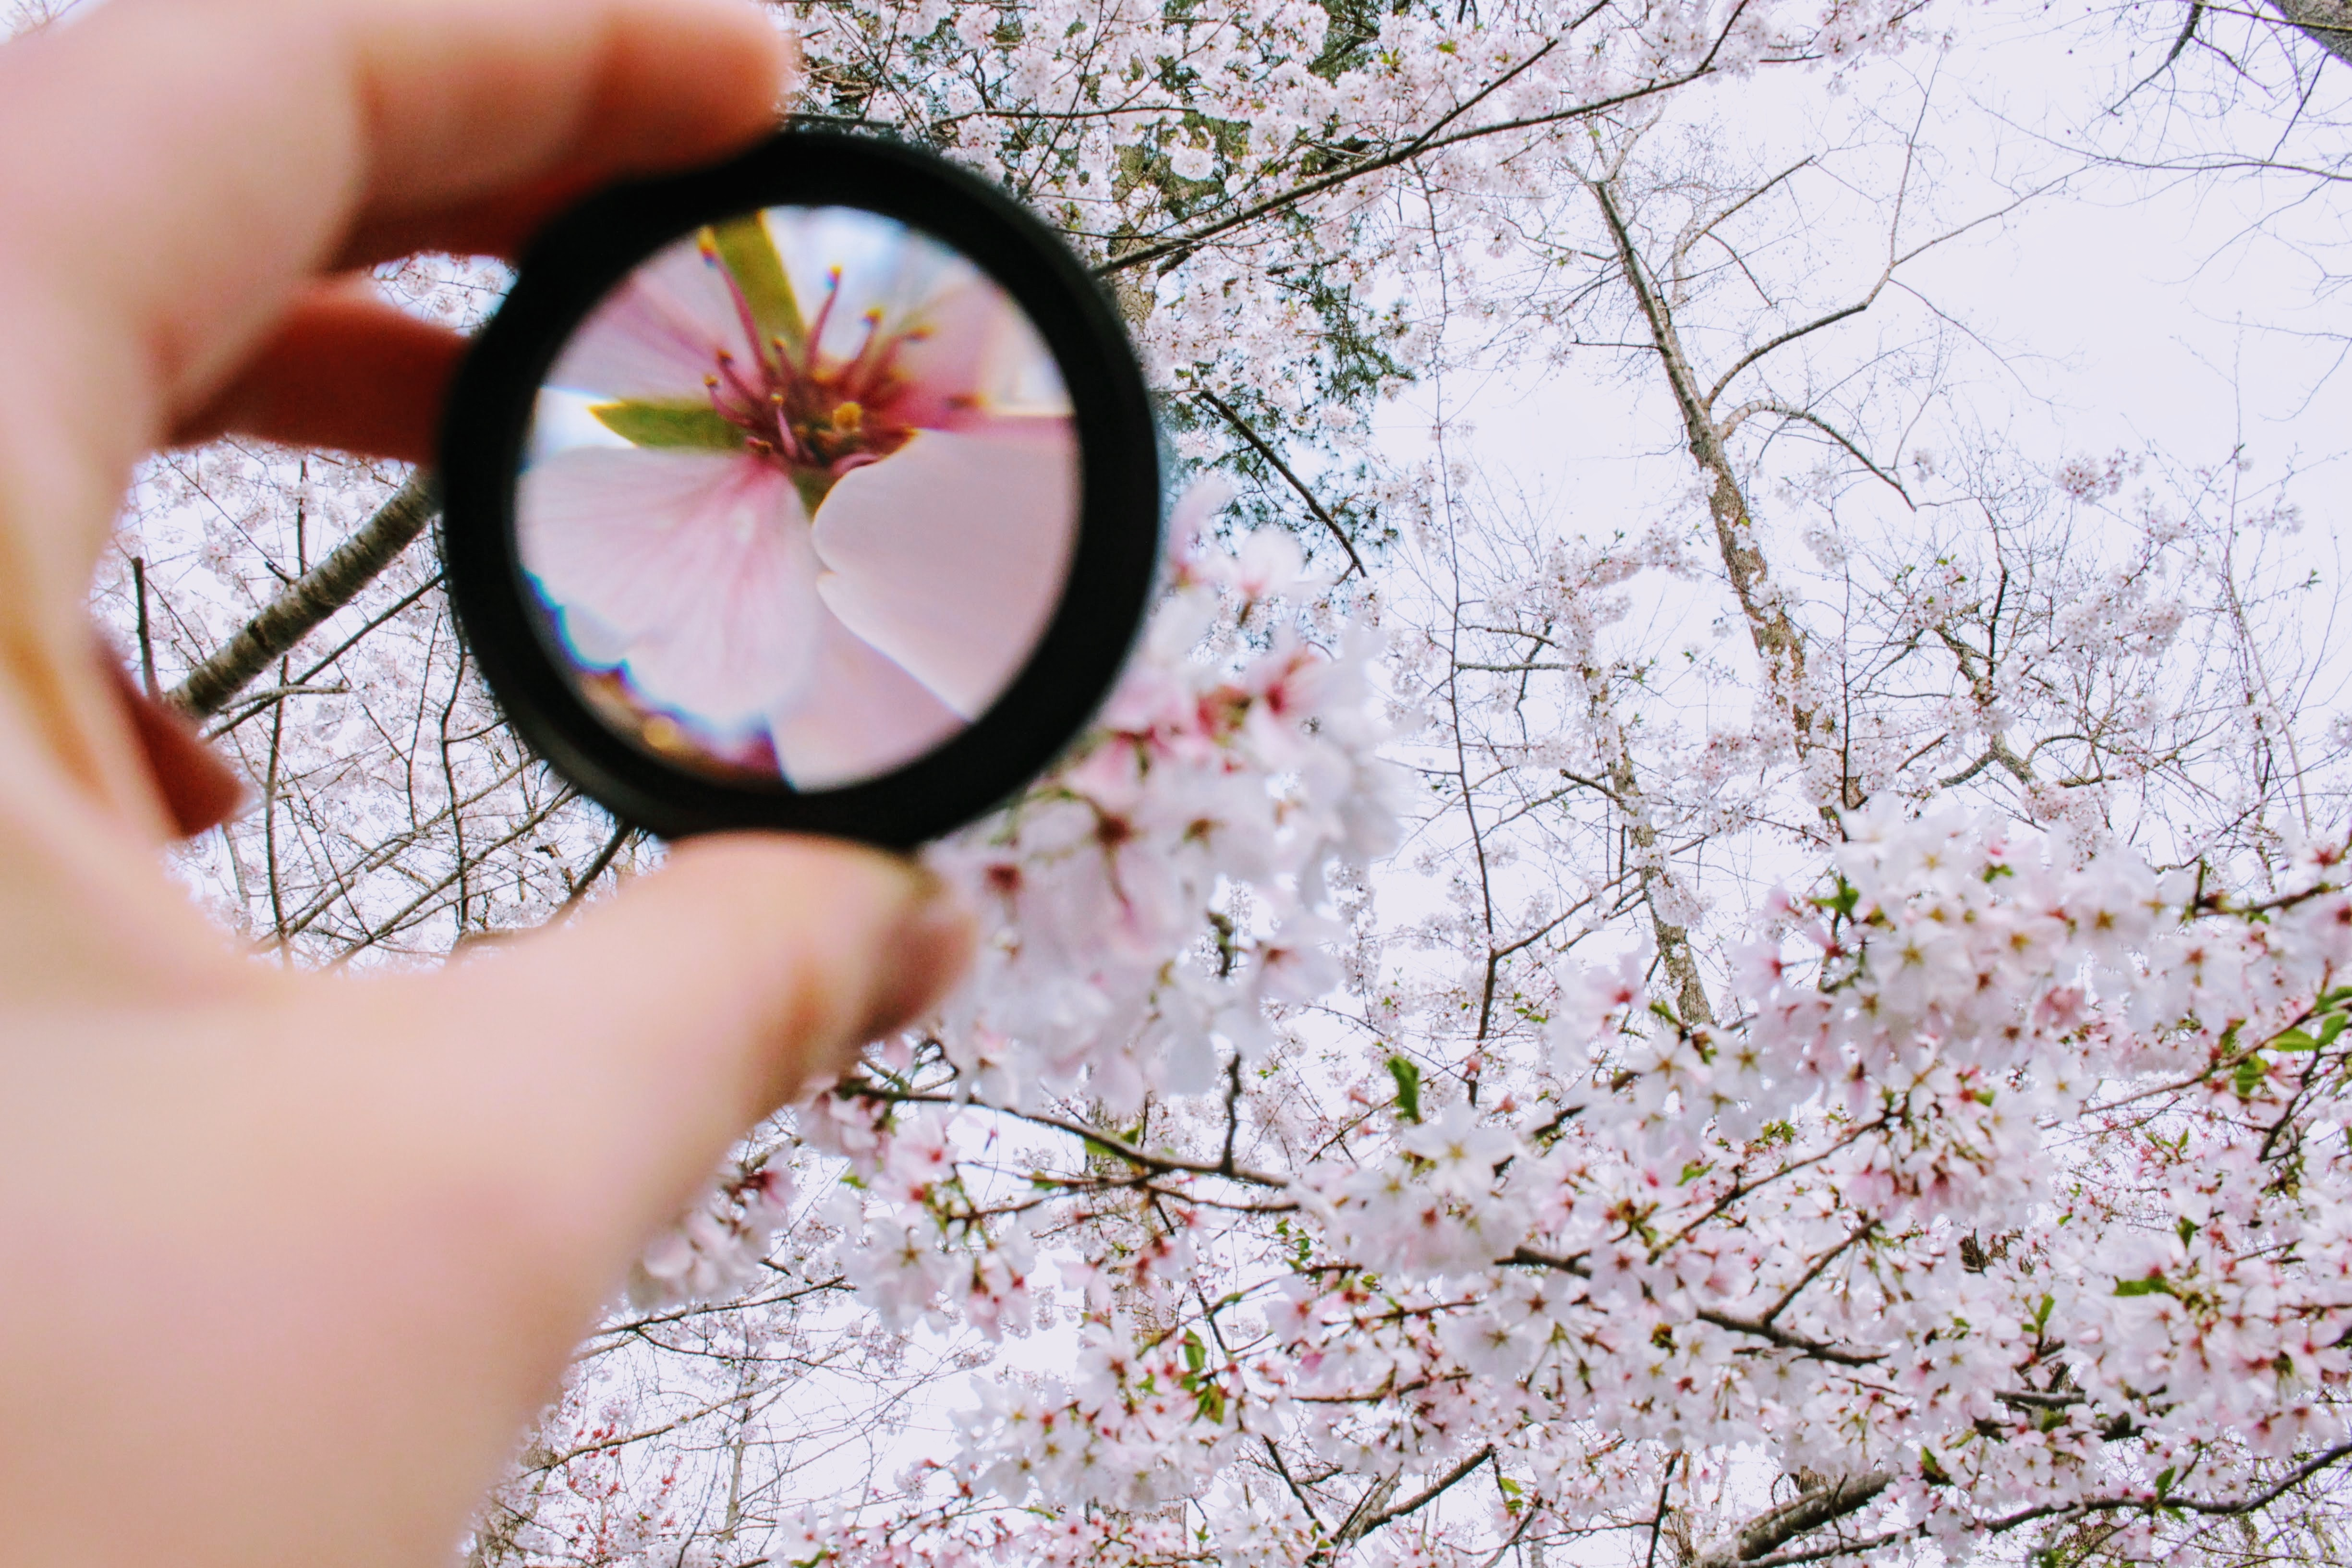 A person holding a looking glass up to a flowering tree to focus on a specific, light pink flower.